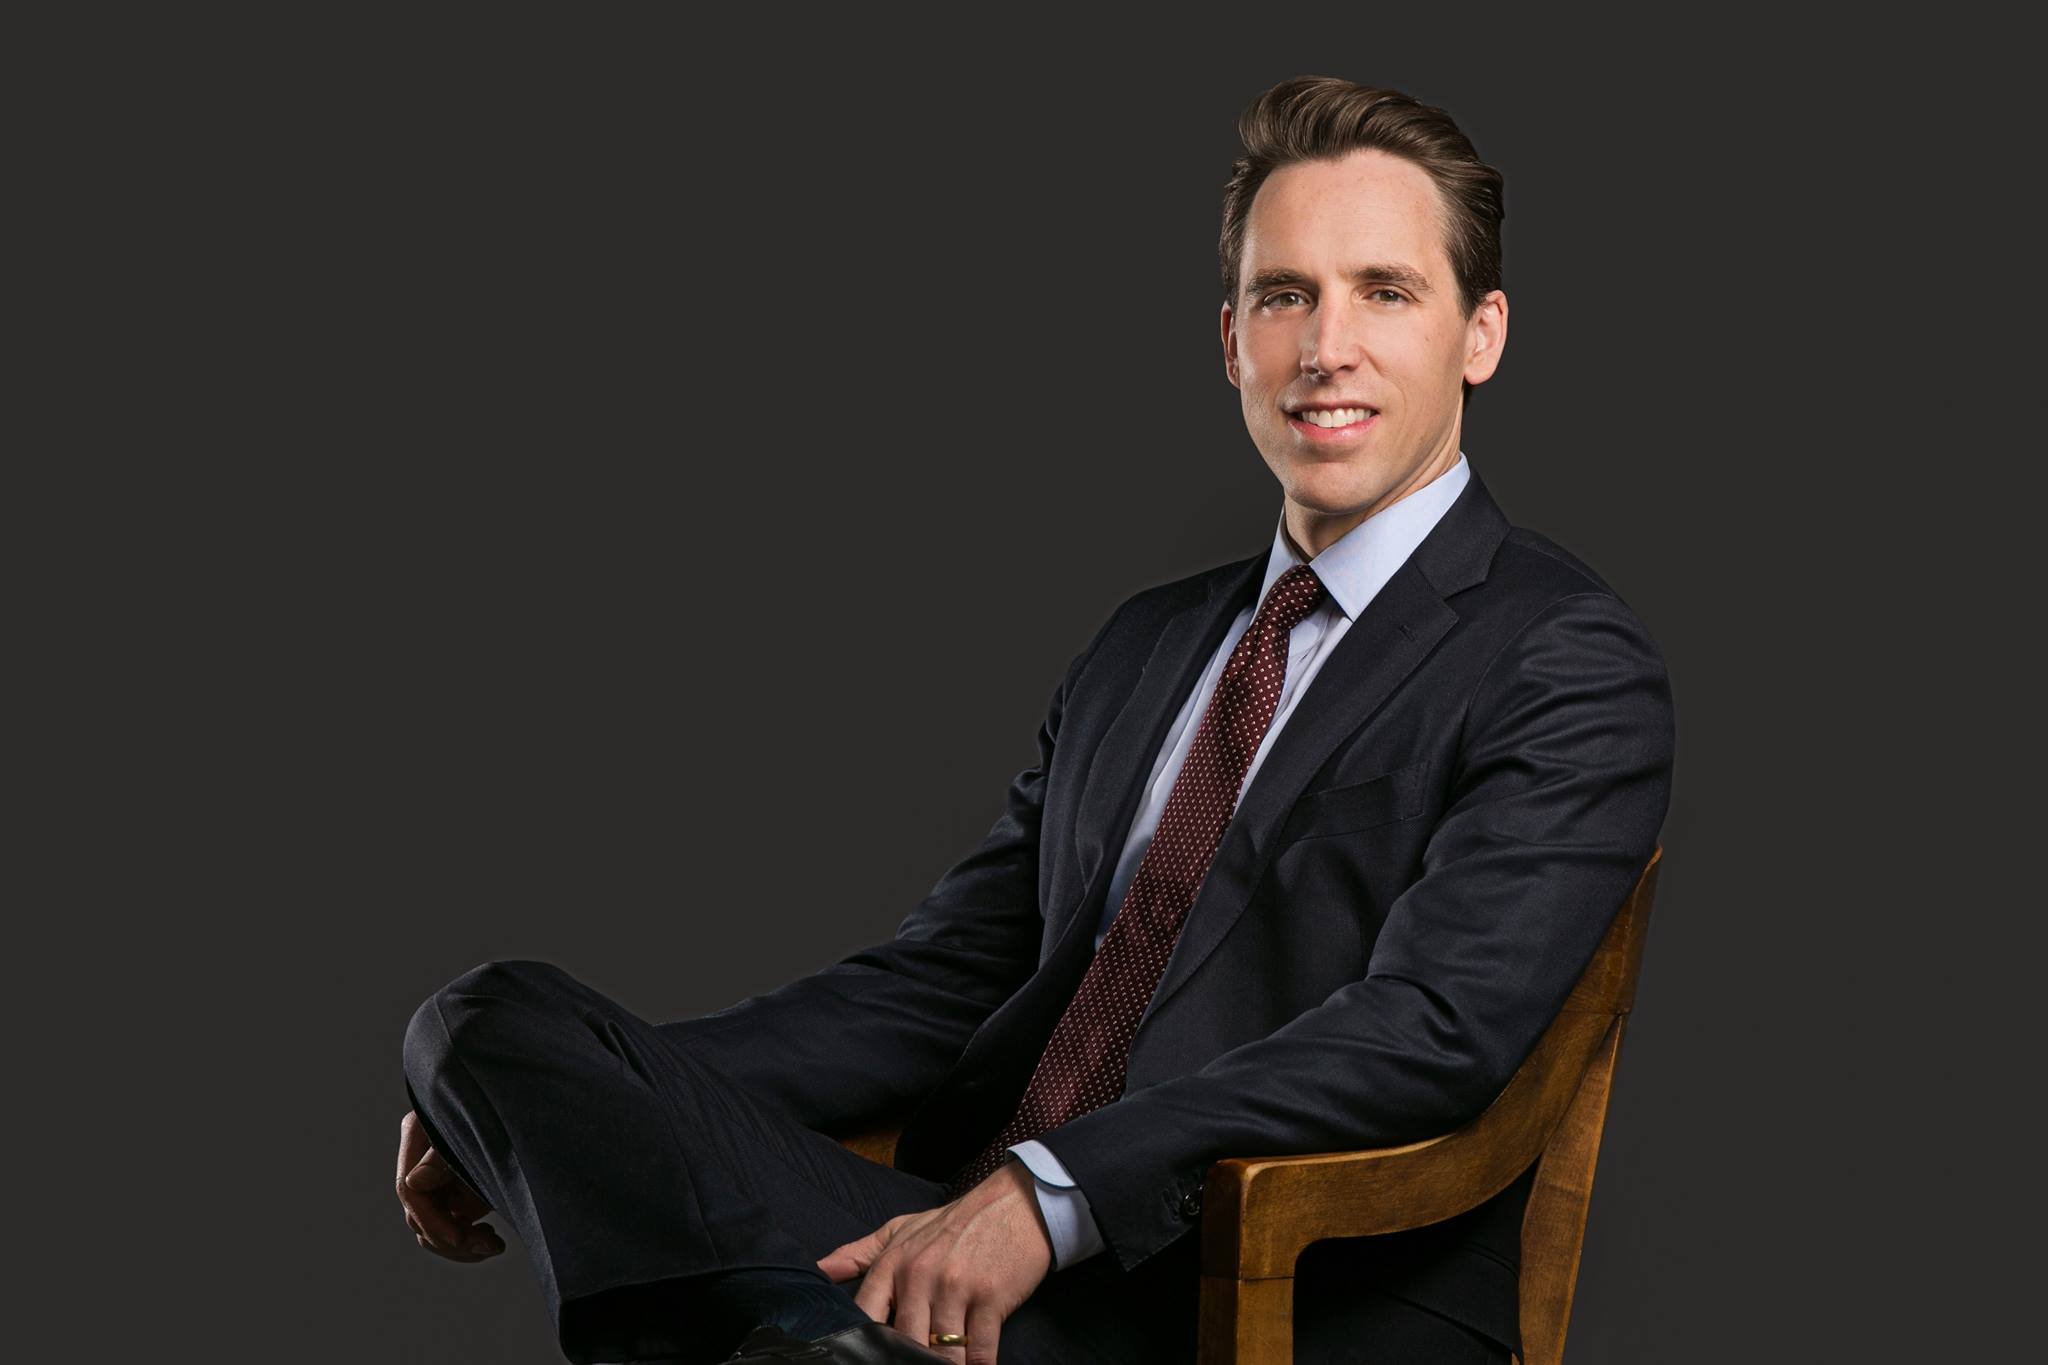 Republican lawyer and University ofMissouriassociate law professor Josh Hawley has been elected as the state's next attorney general. (Josh Hawley/Facebook)